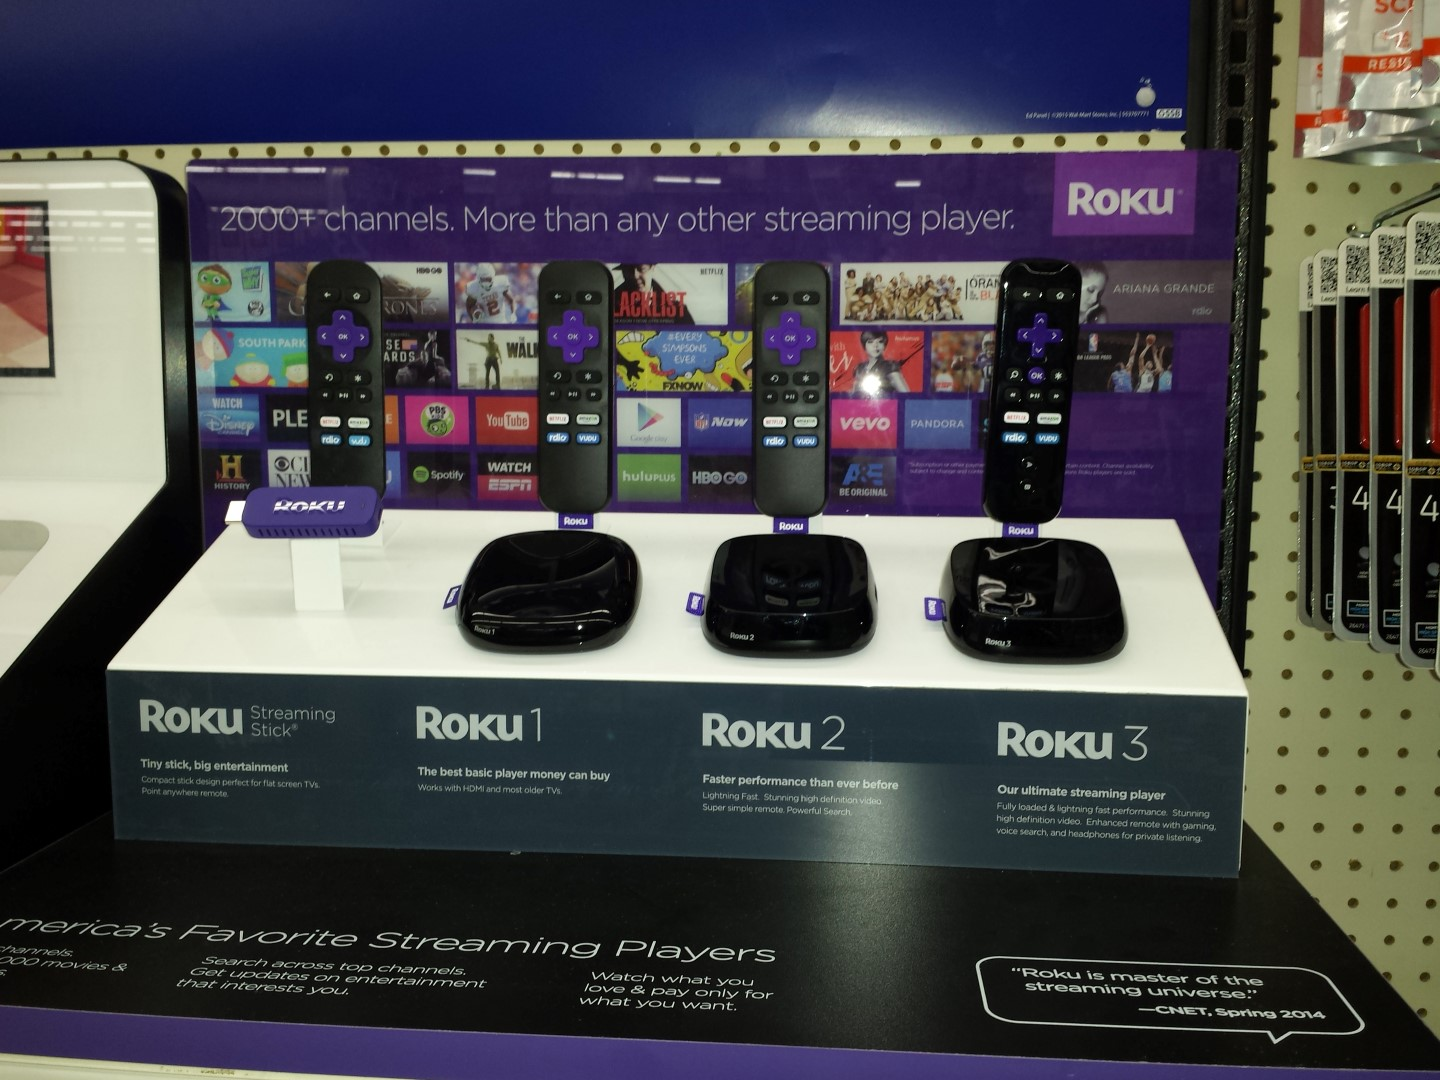 Make Sure You Know Which Roku 3 Model You Are Buying